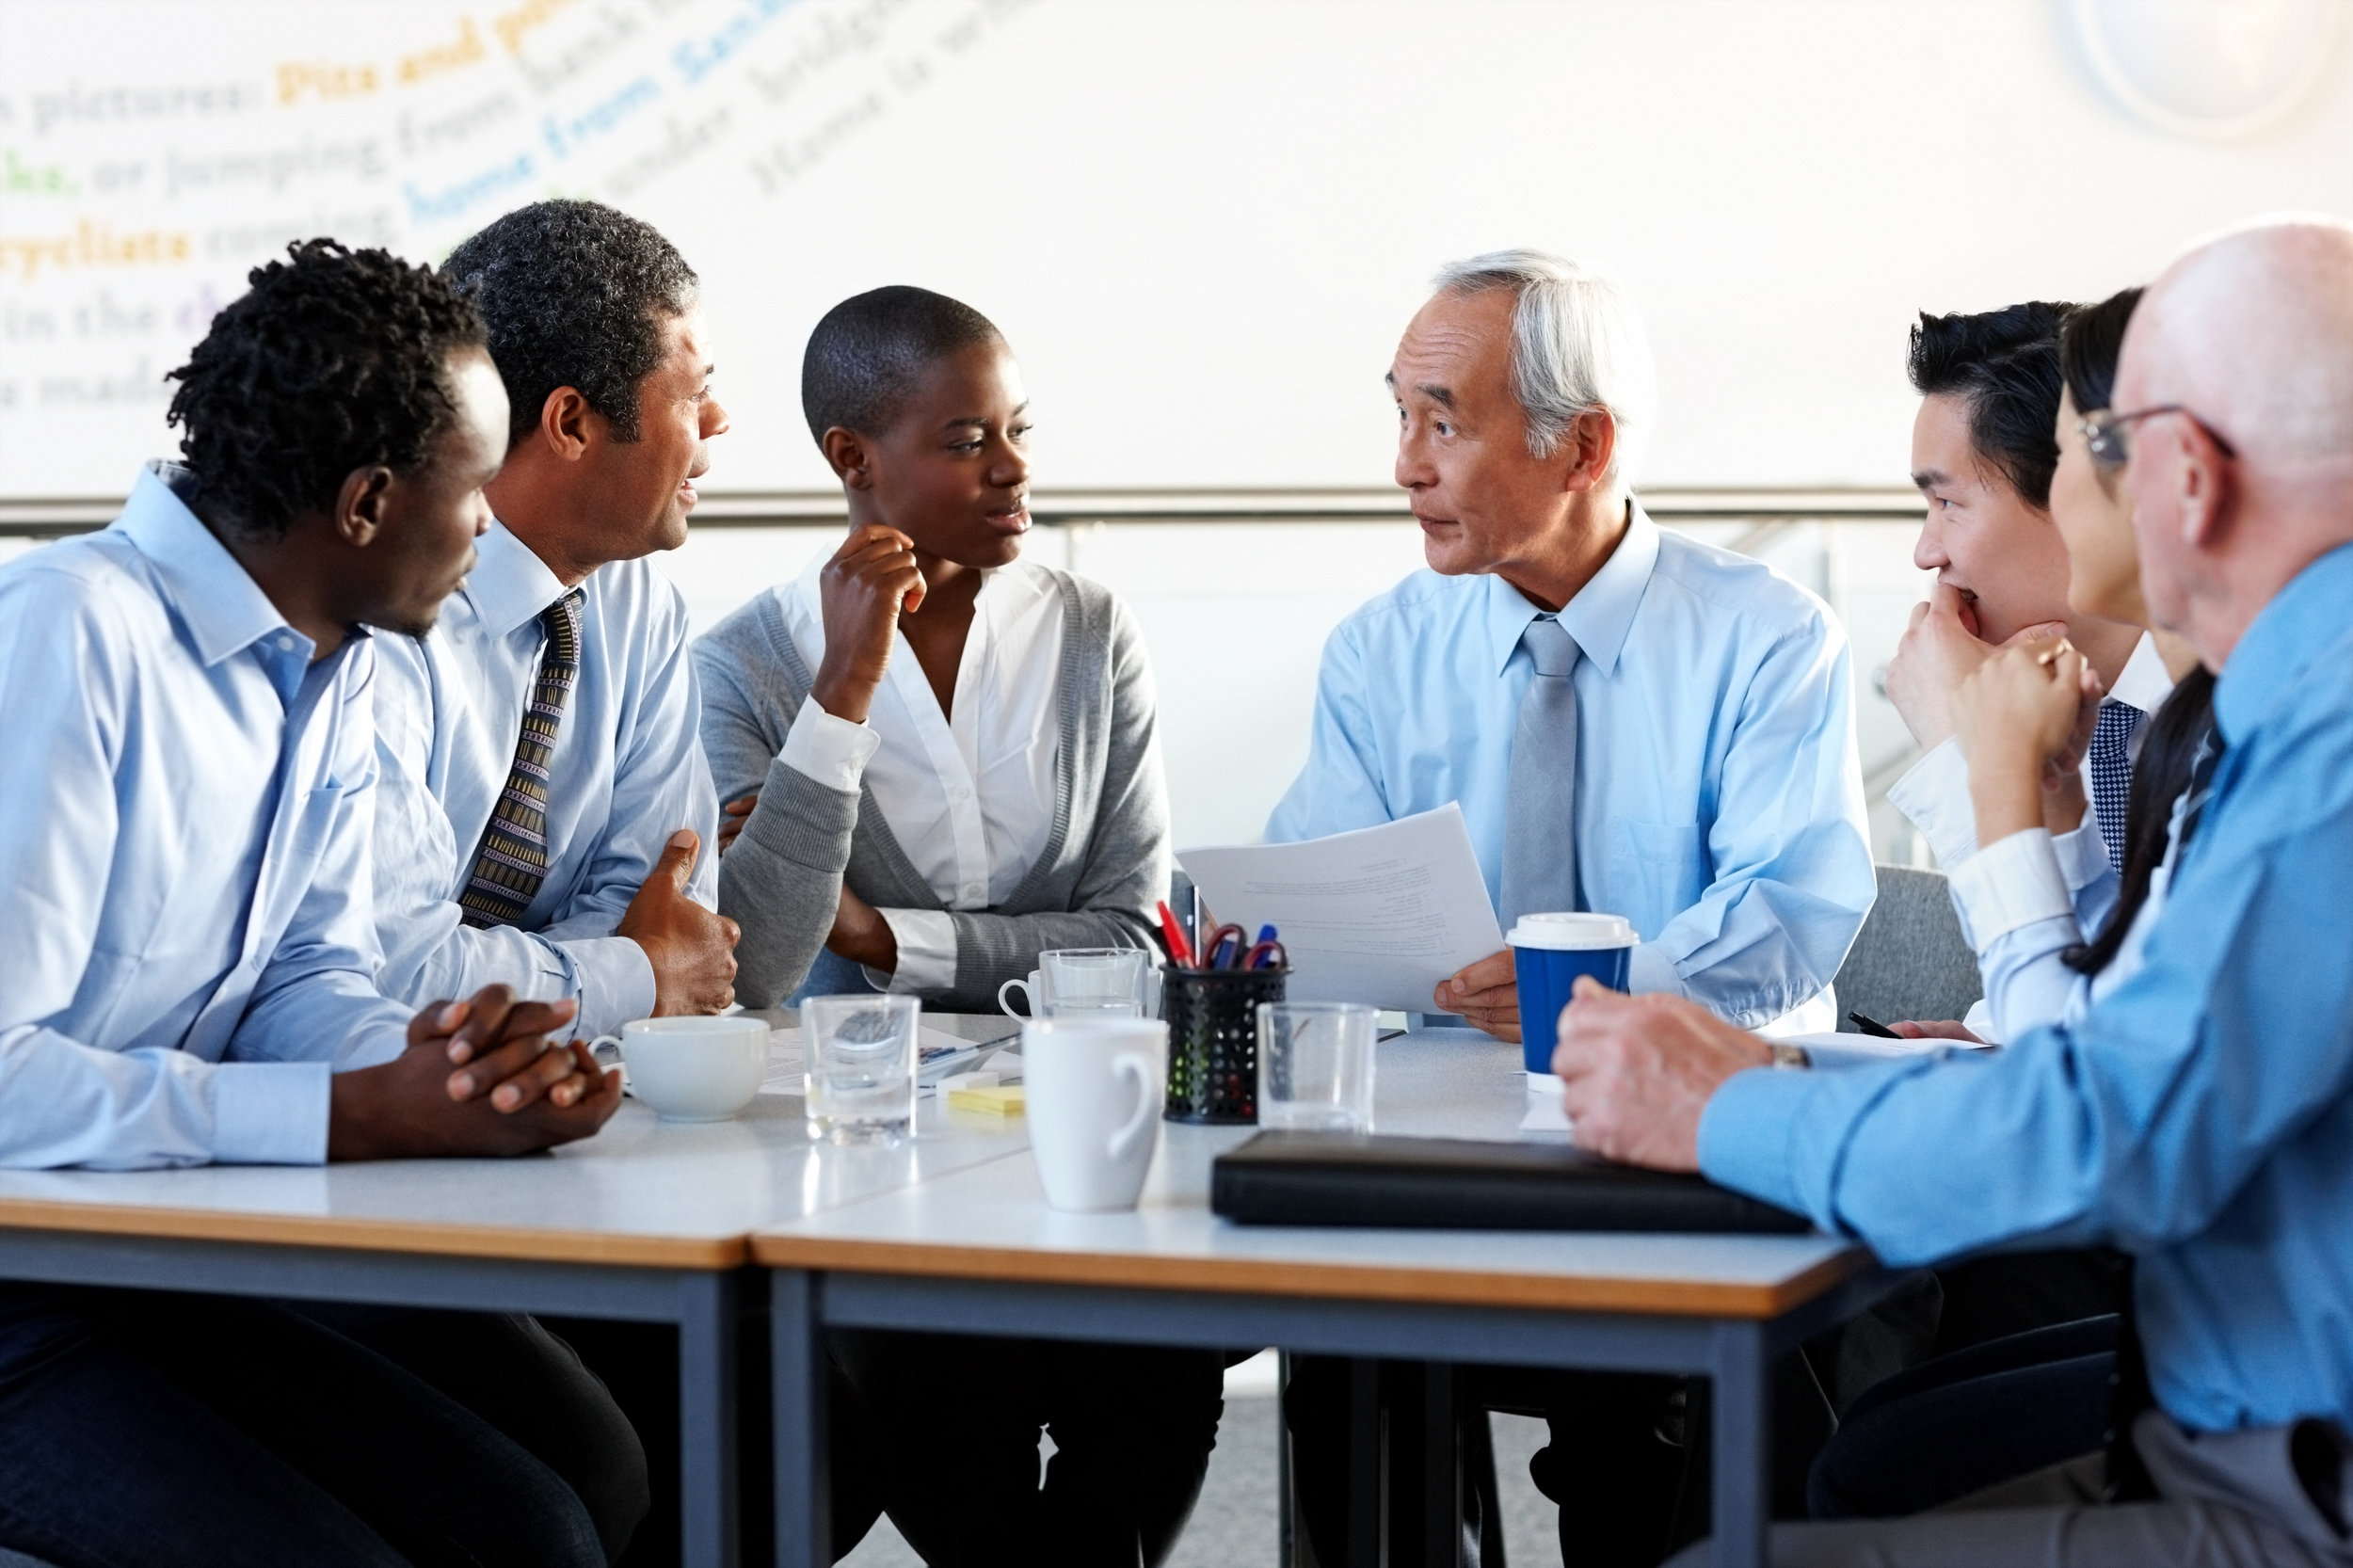 Business Inclusion - We assist public agencies in the development, implementation, monitoring and compliance of business inclusion programs. In the private sector, we work with large corporations/prime contractors to differentiate them from competitors by integrating meaningful business inclusion strategies, facilitating stakeholder engagement and identifying the local, small and disadvantaged business enterprises (L/S/DBEs) that best meet project requirements. Our aim is not only to help the primes' bids and projects succeed, but also to create lasting connections with DBE partners that further the long-term, strategic objectives of both parties.